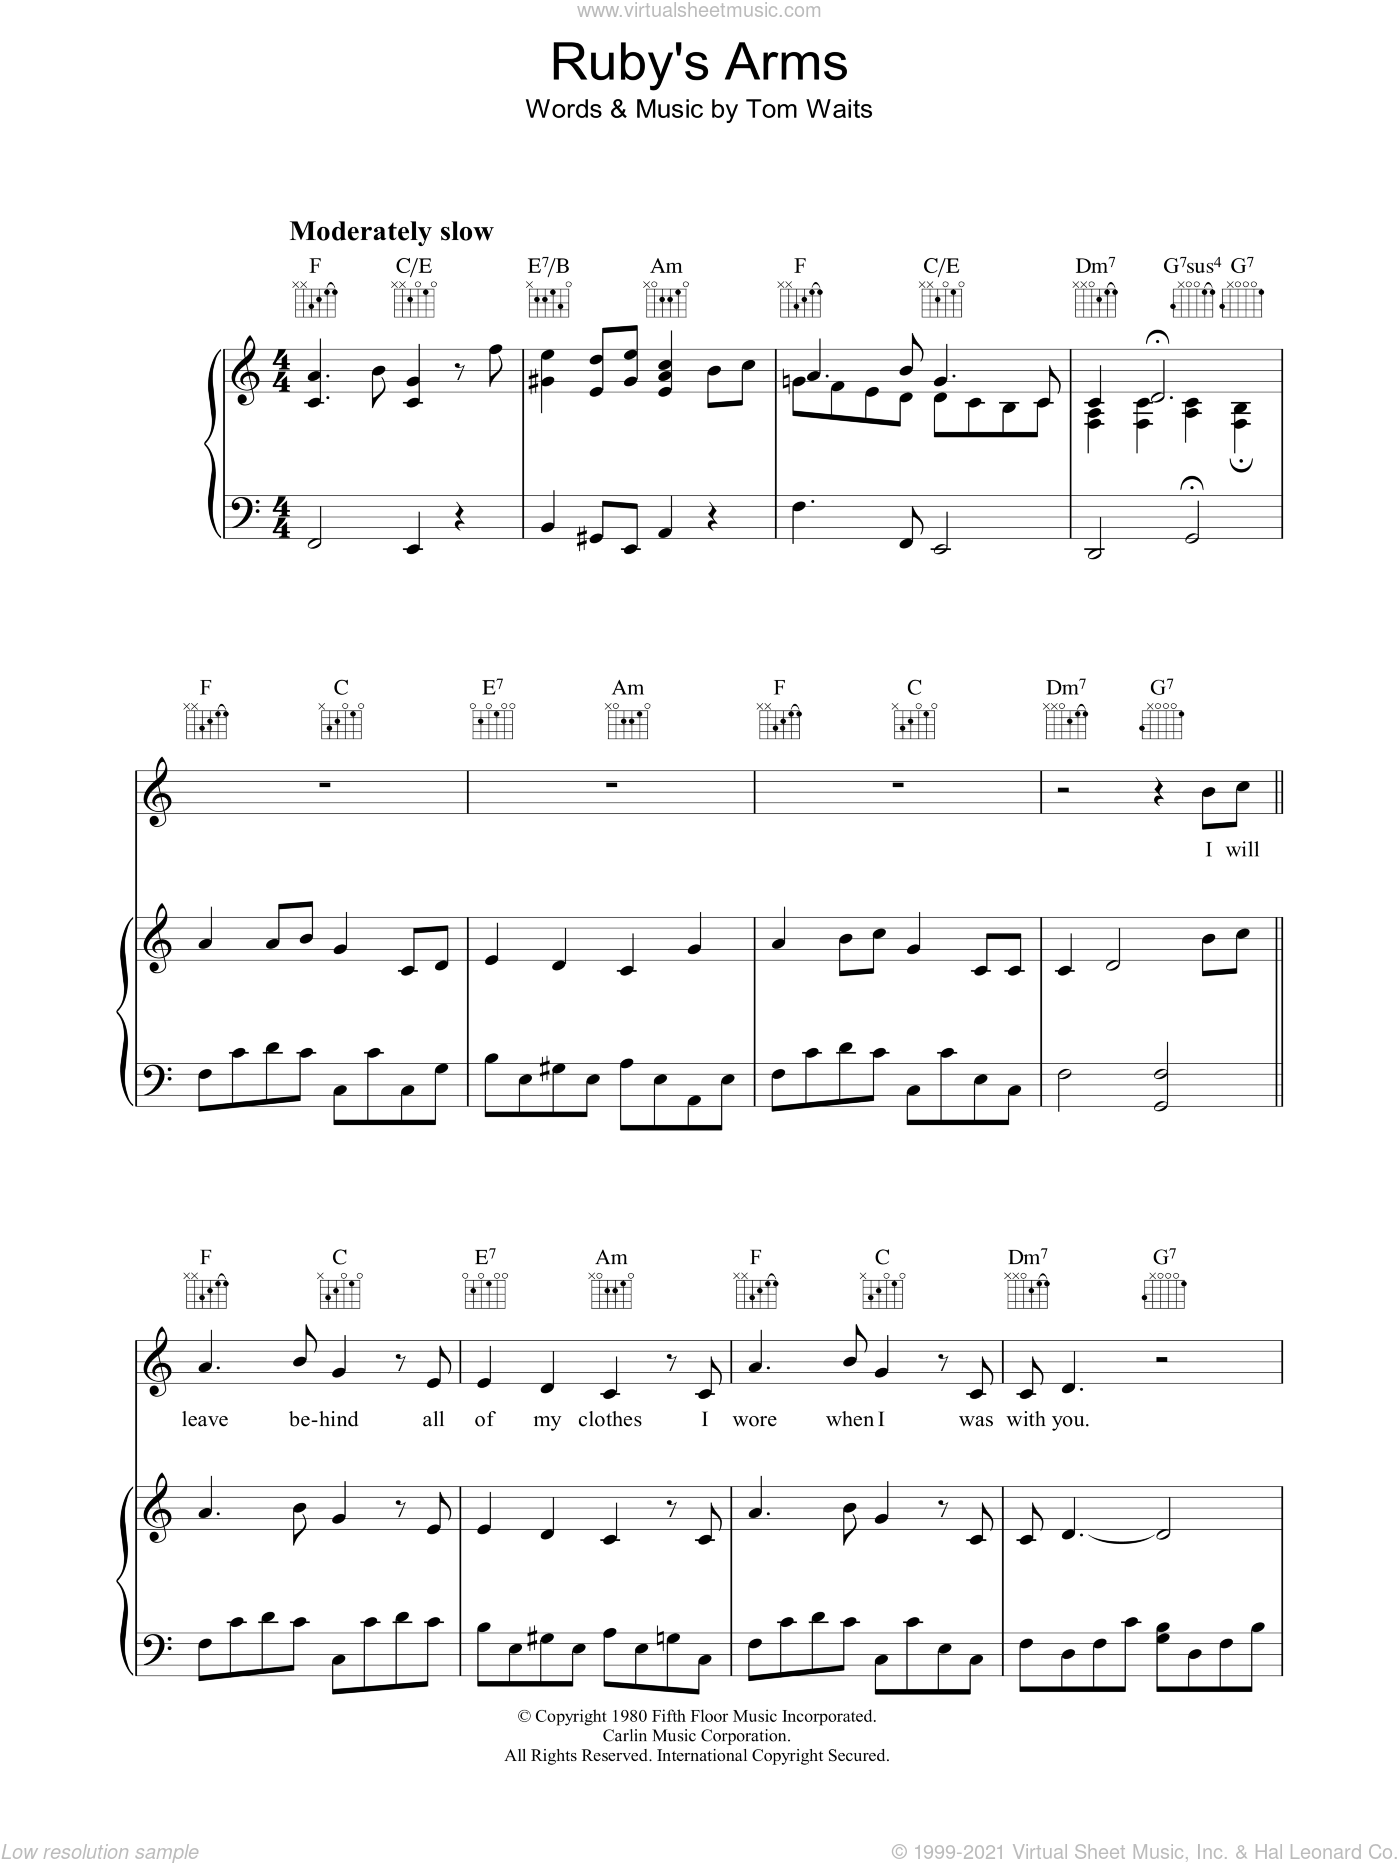 Ruby's Arms sheet music for voice, piano or guitar by Tom Waits. Score Image Preview.